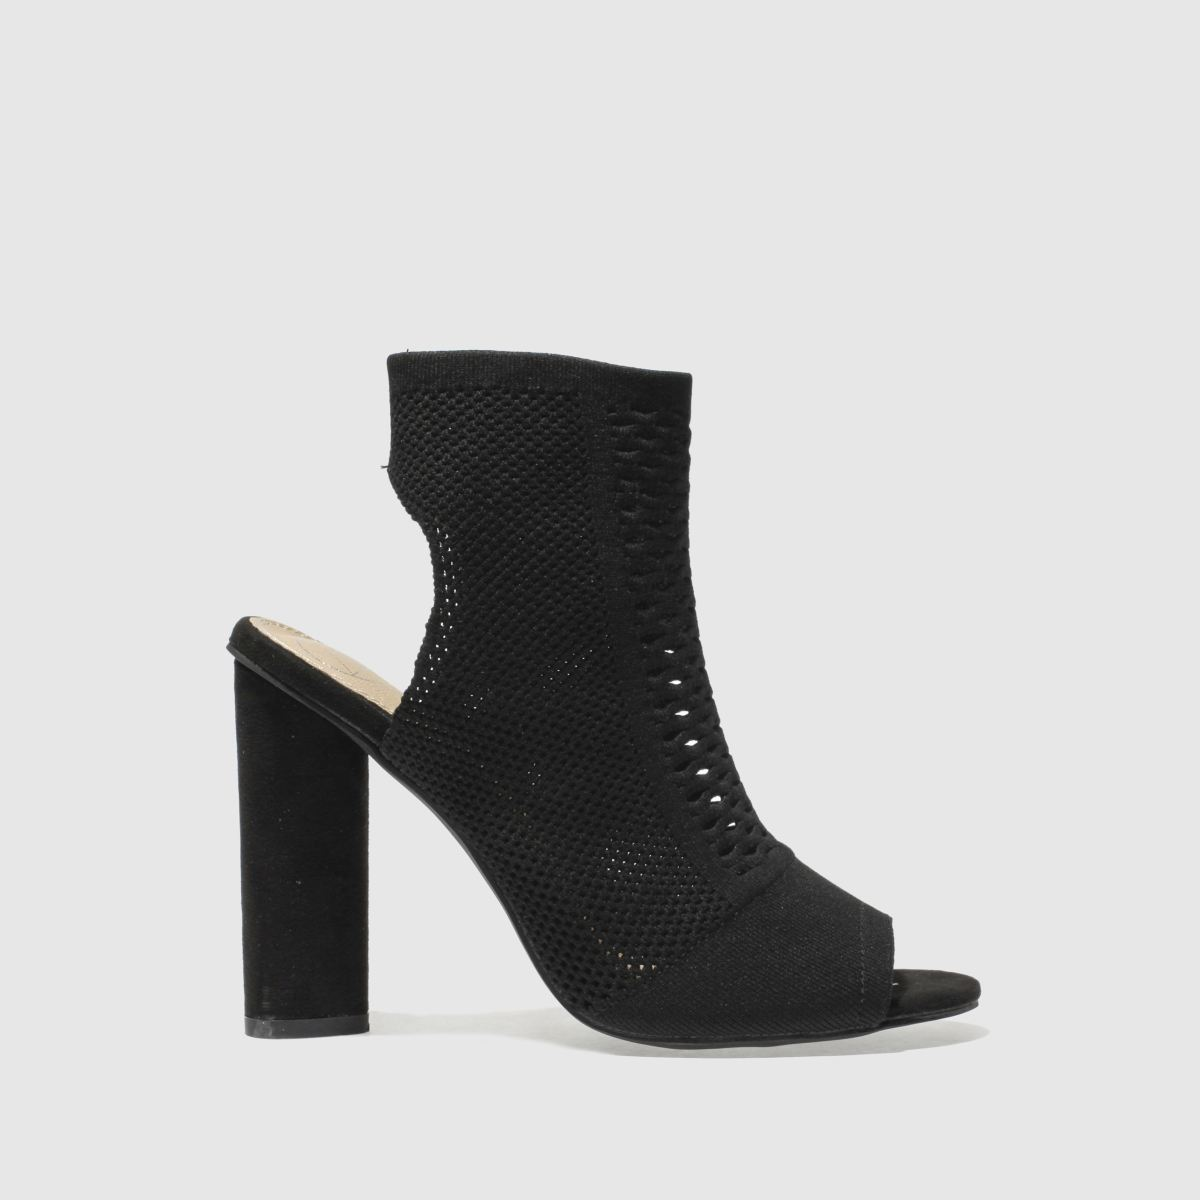 Missguided Black Peep Toe Knitted Boots